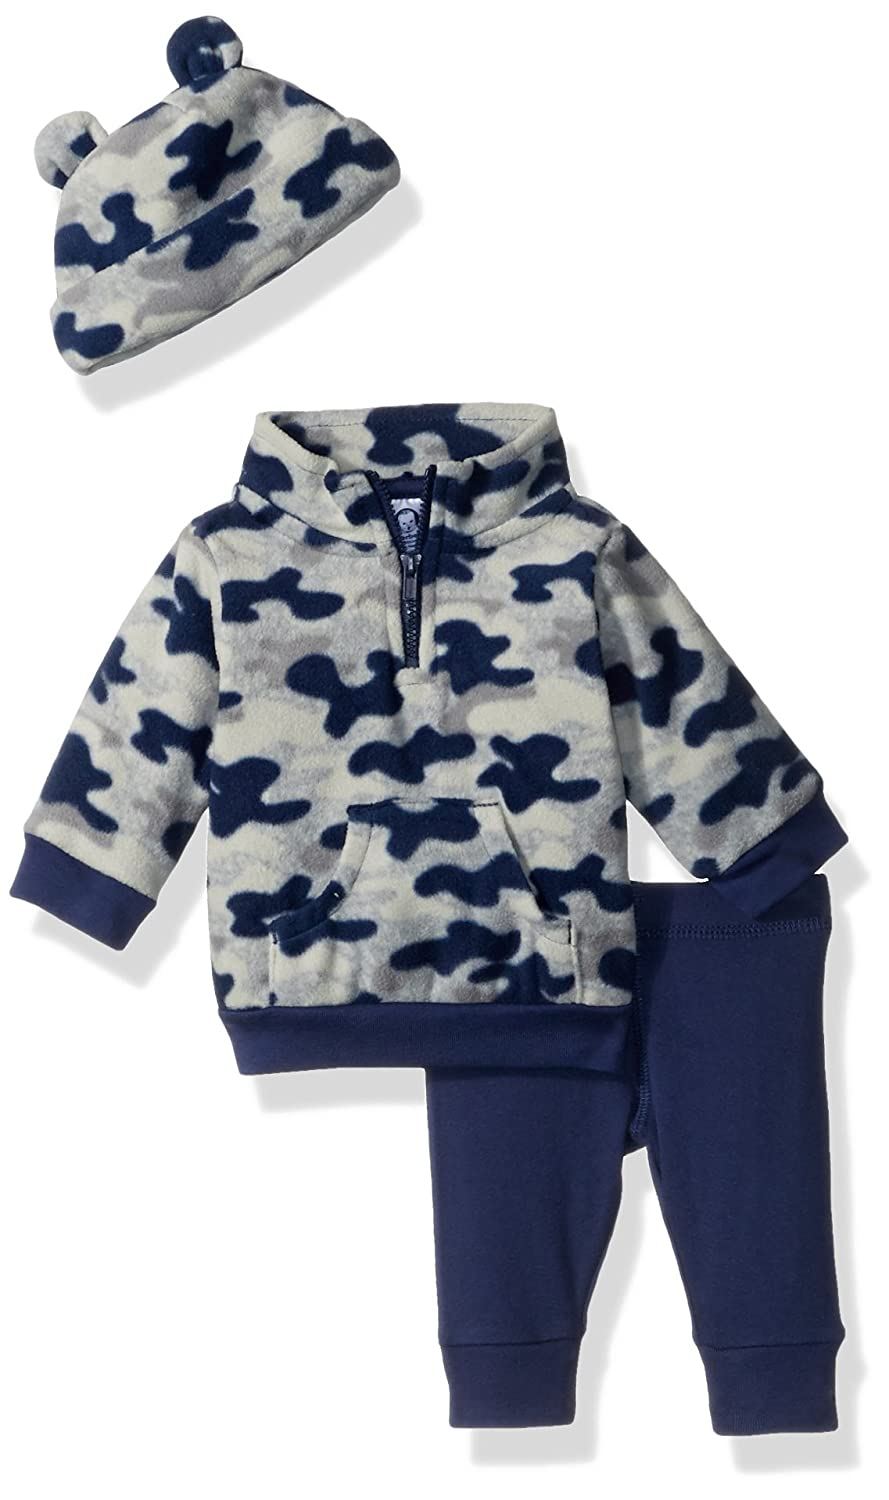 Gerber Baby Boy 3 Piece Micro Fleece Top, Pant and Cap Set Gerber Children' s Apparel FA17JB